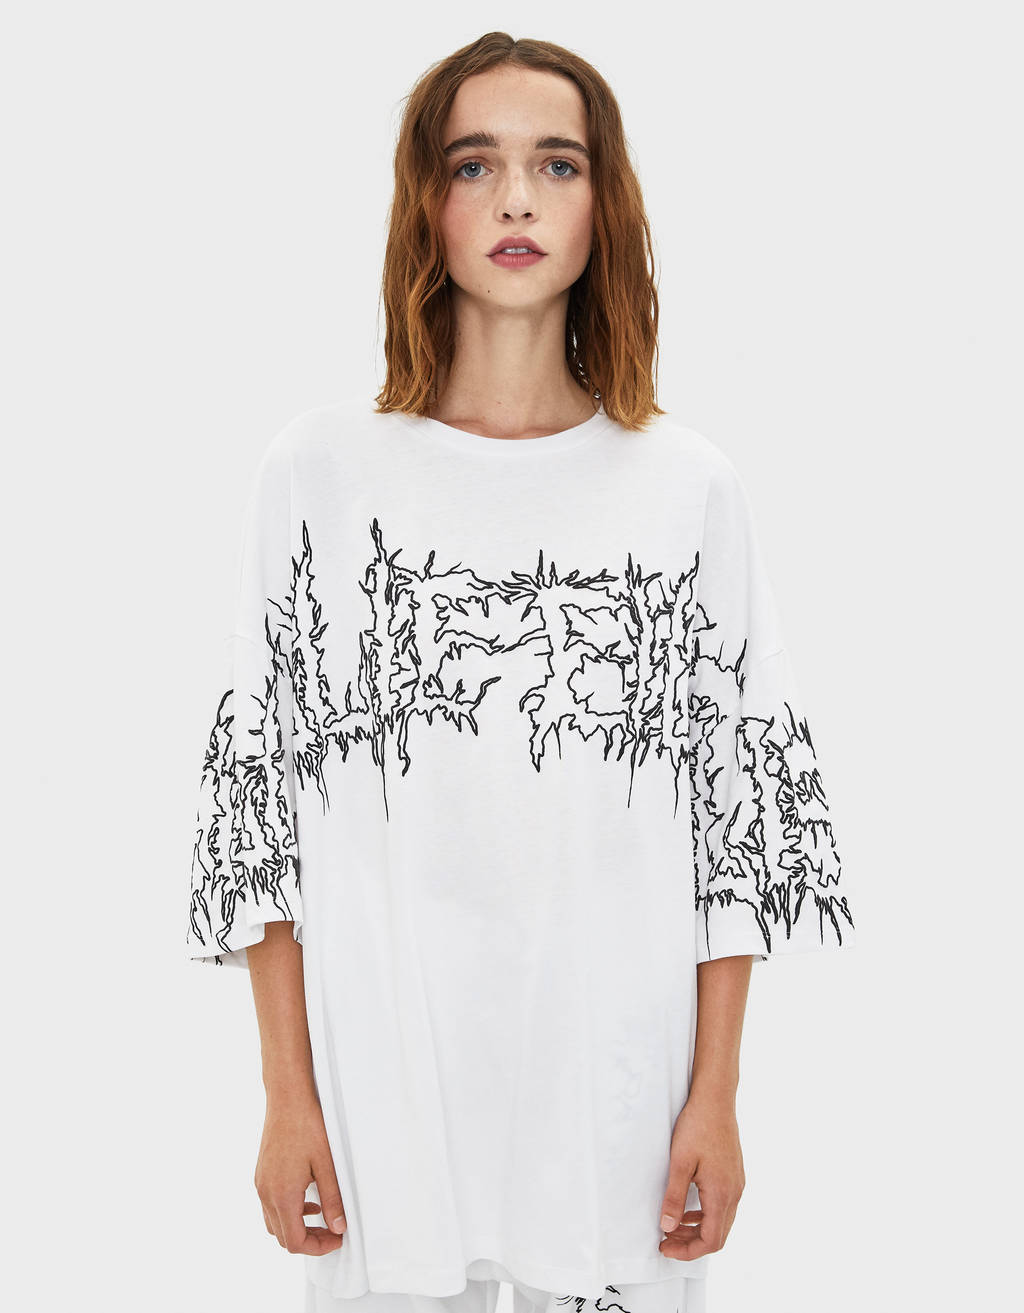 Billie Eilish x Bershka t-shirt